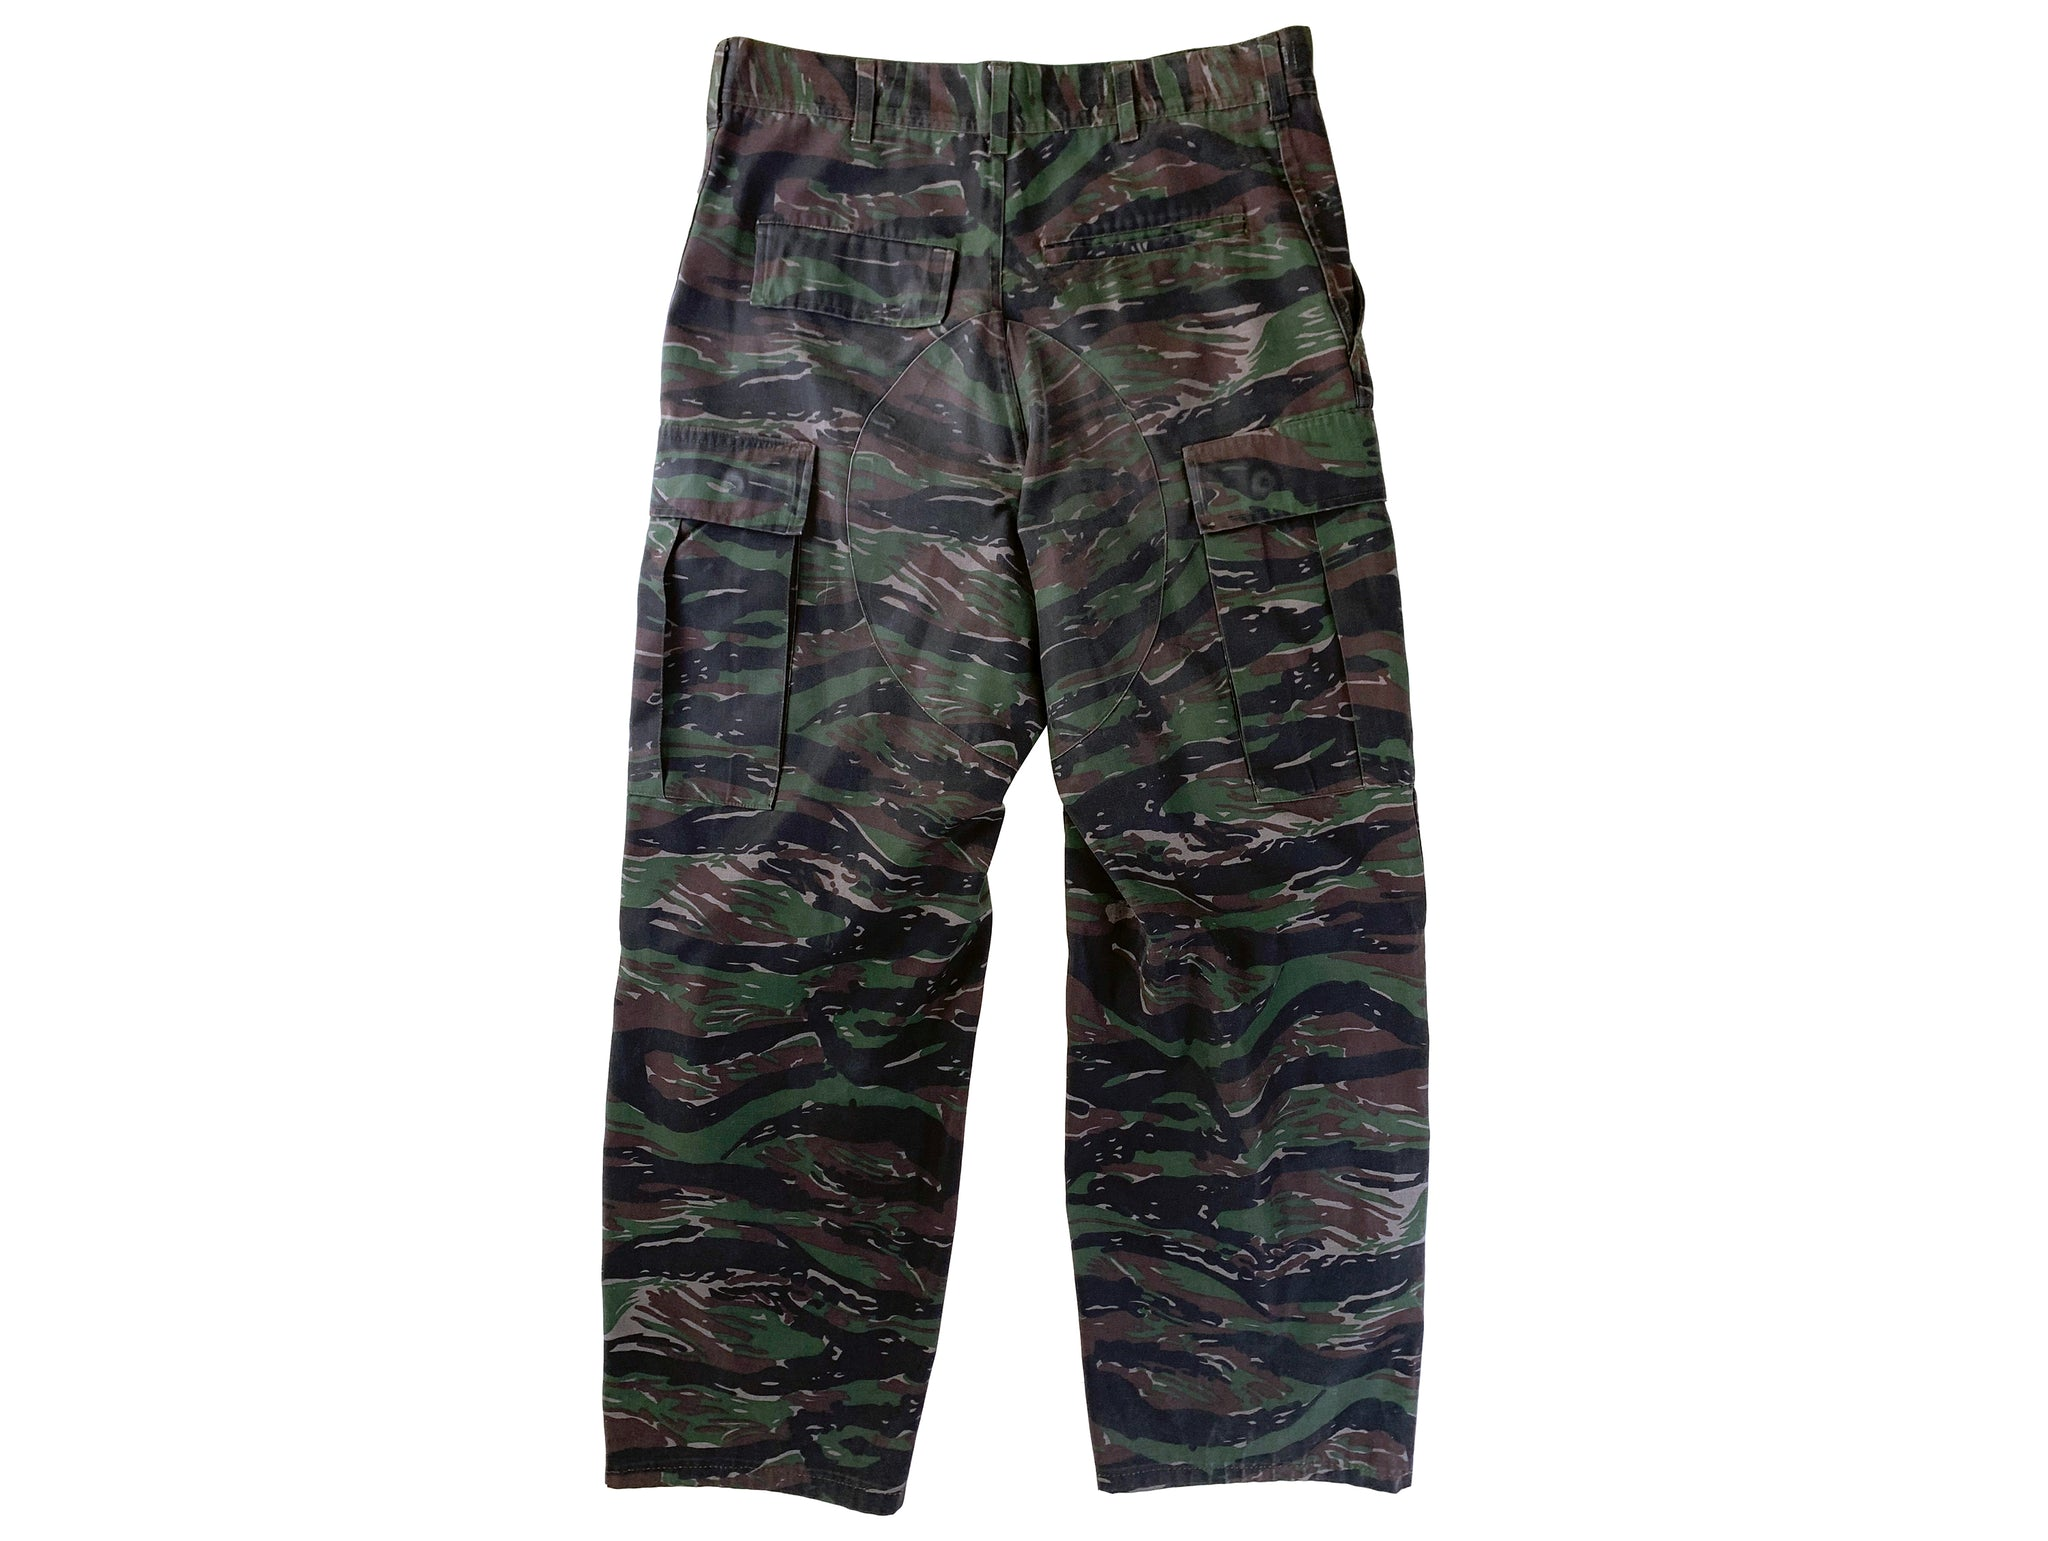 Tiger Stripe Camouflage Pants